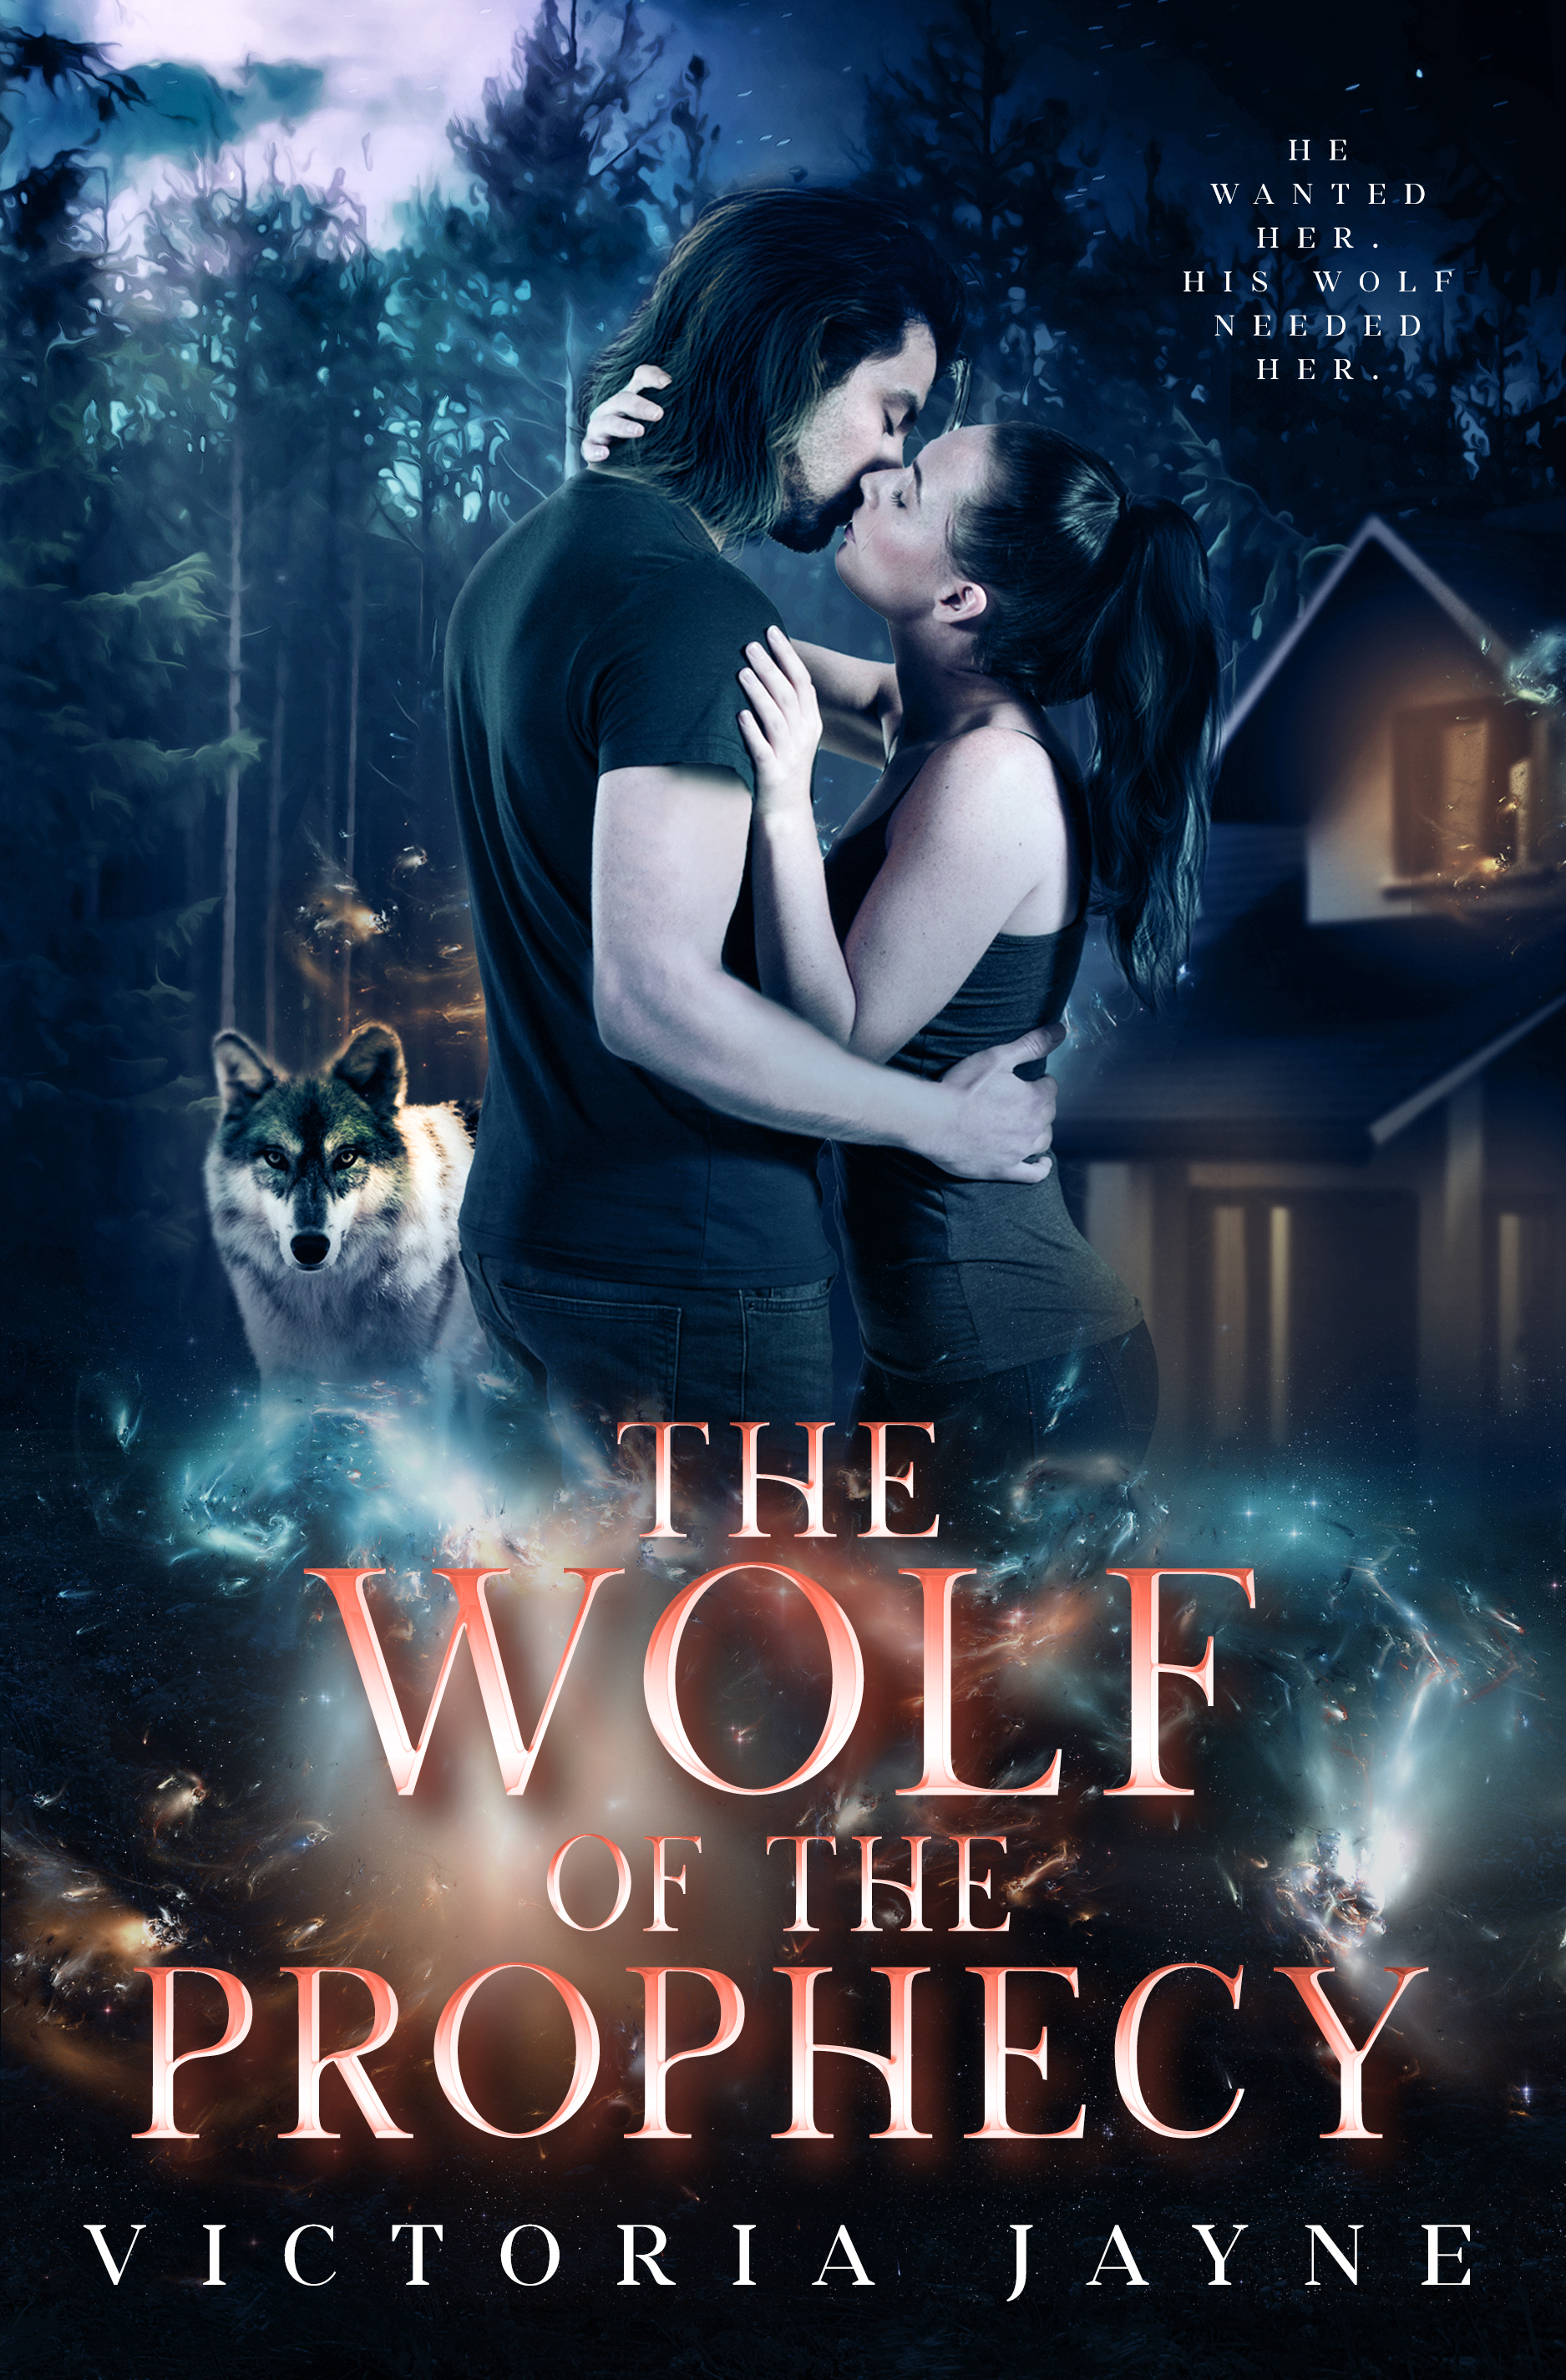 The Wolf of the Prophecy eBook